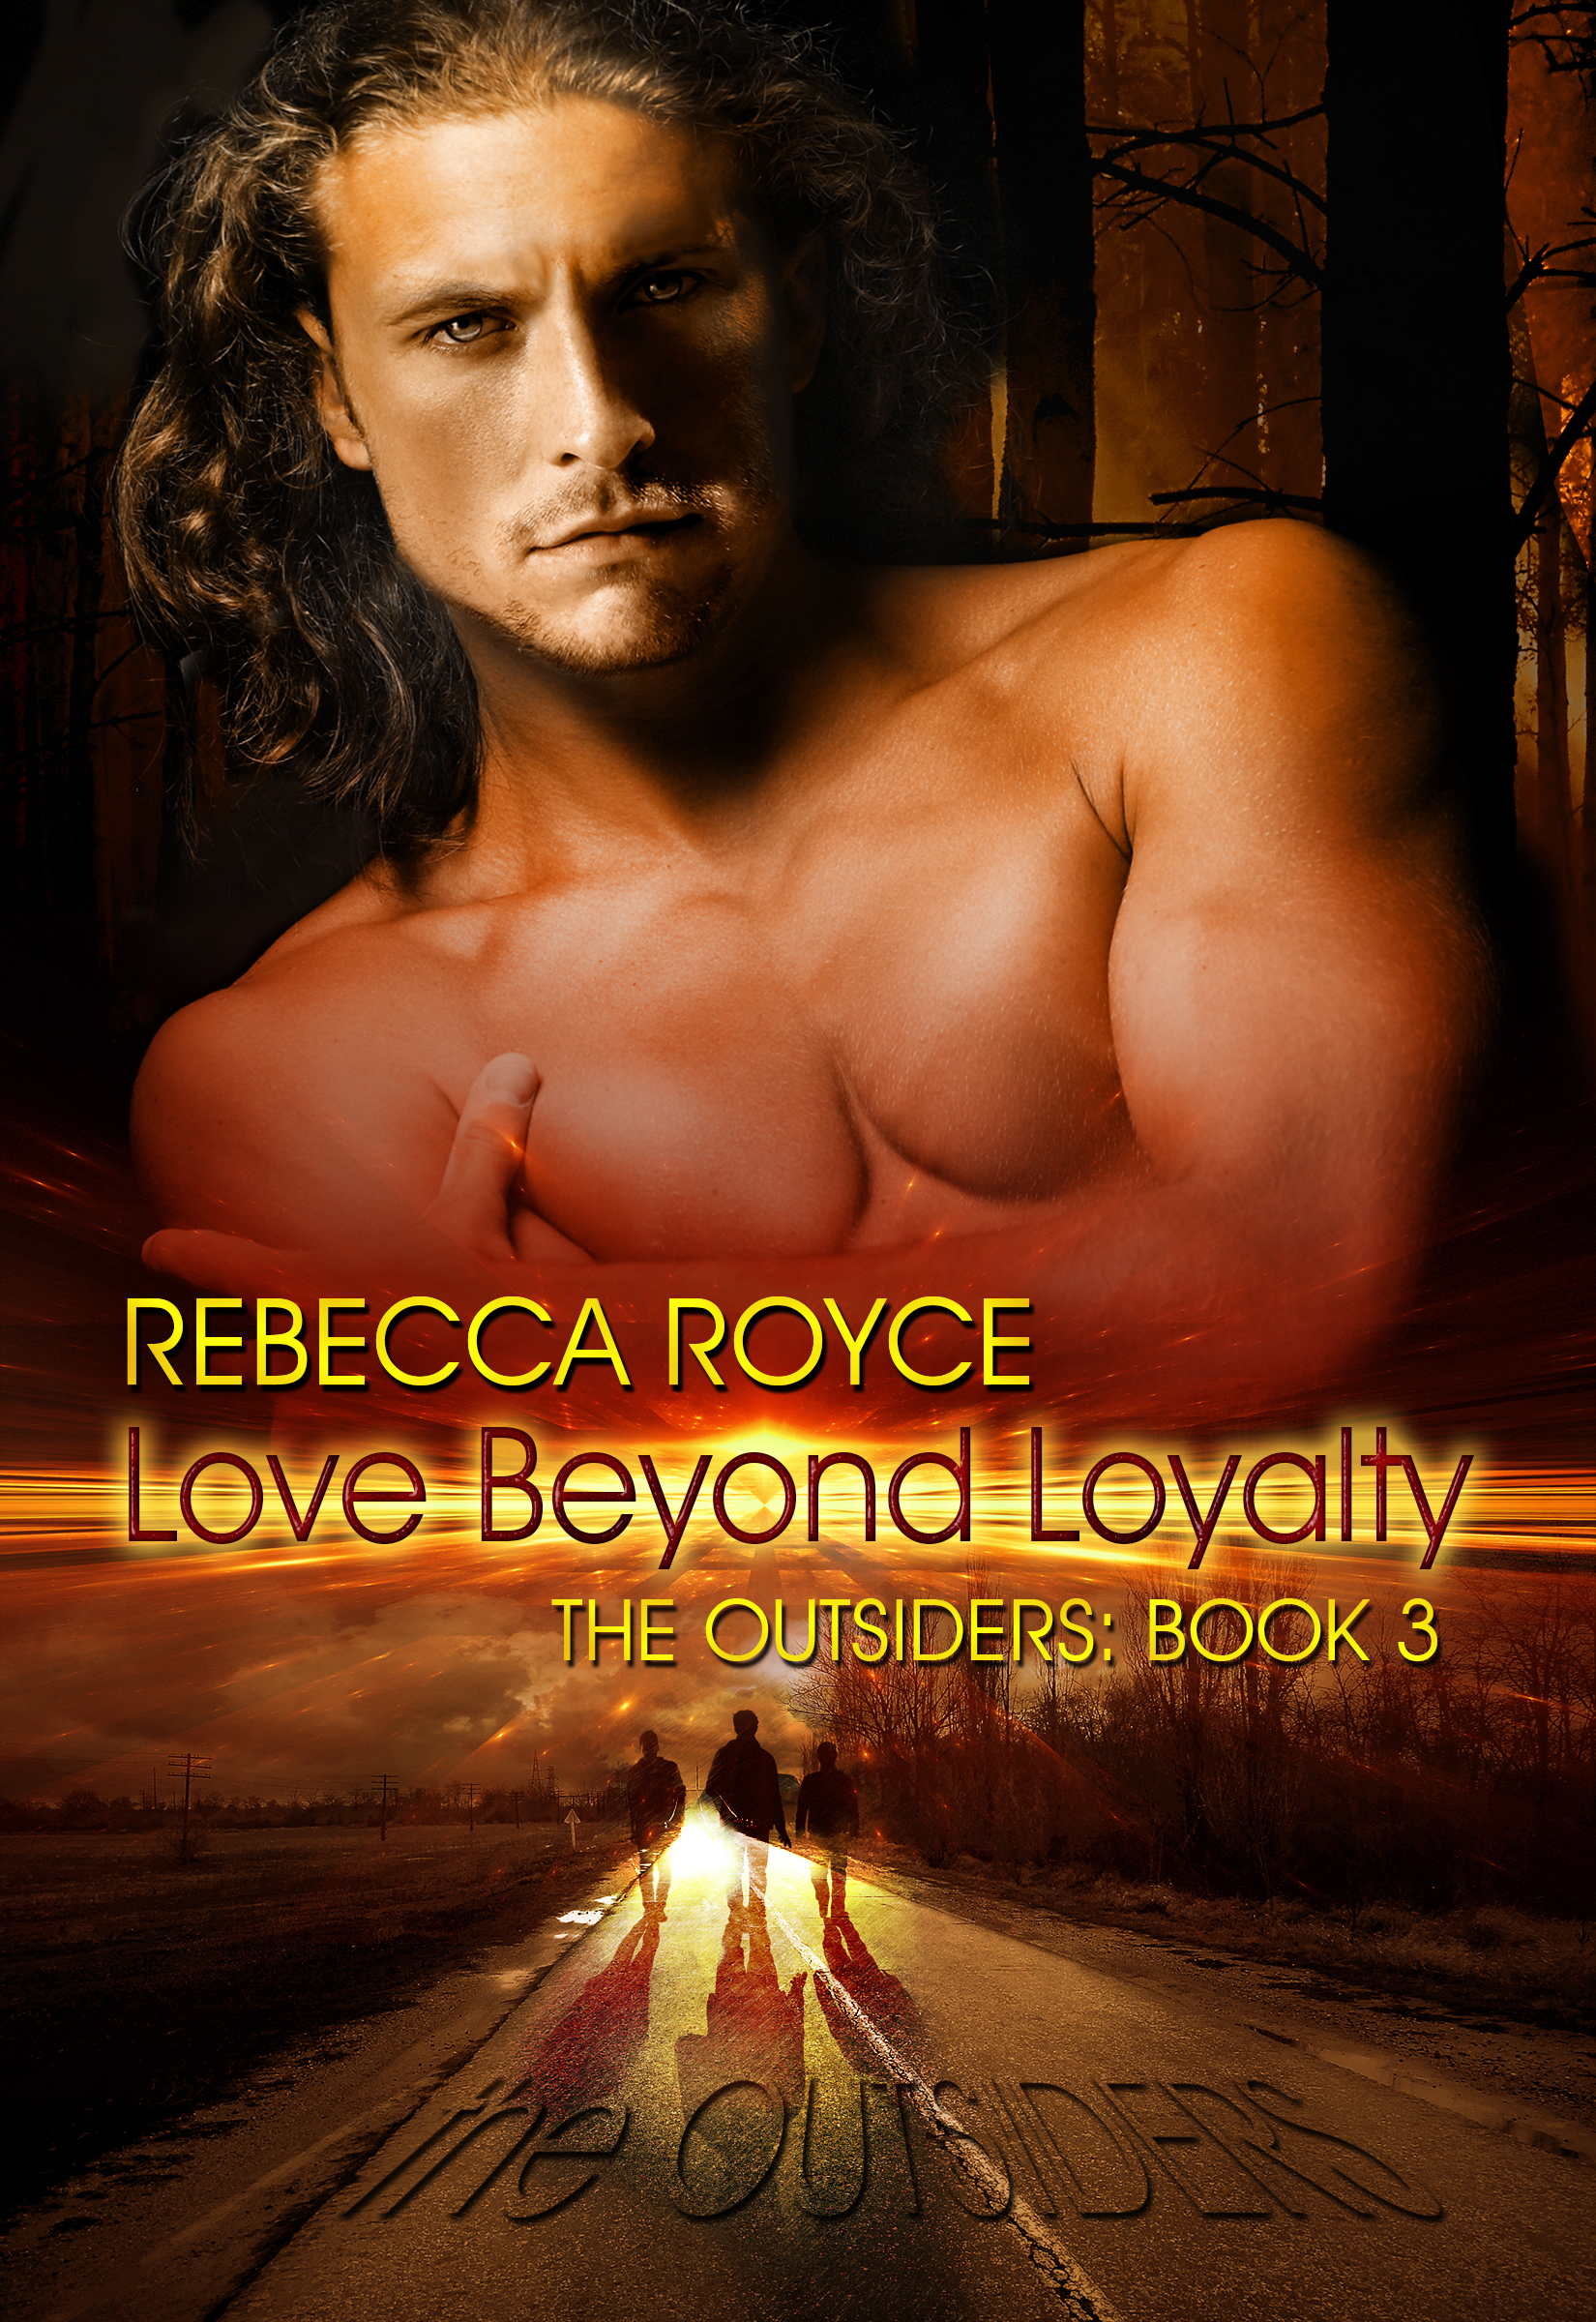 RebeccaRoyce_TheOutsiders_Book3_LoveBeyondLoyalty.jpg